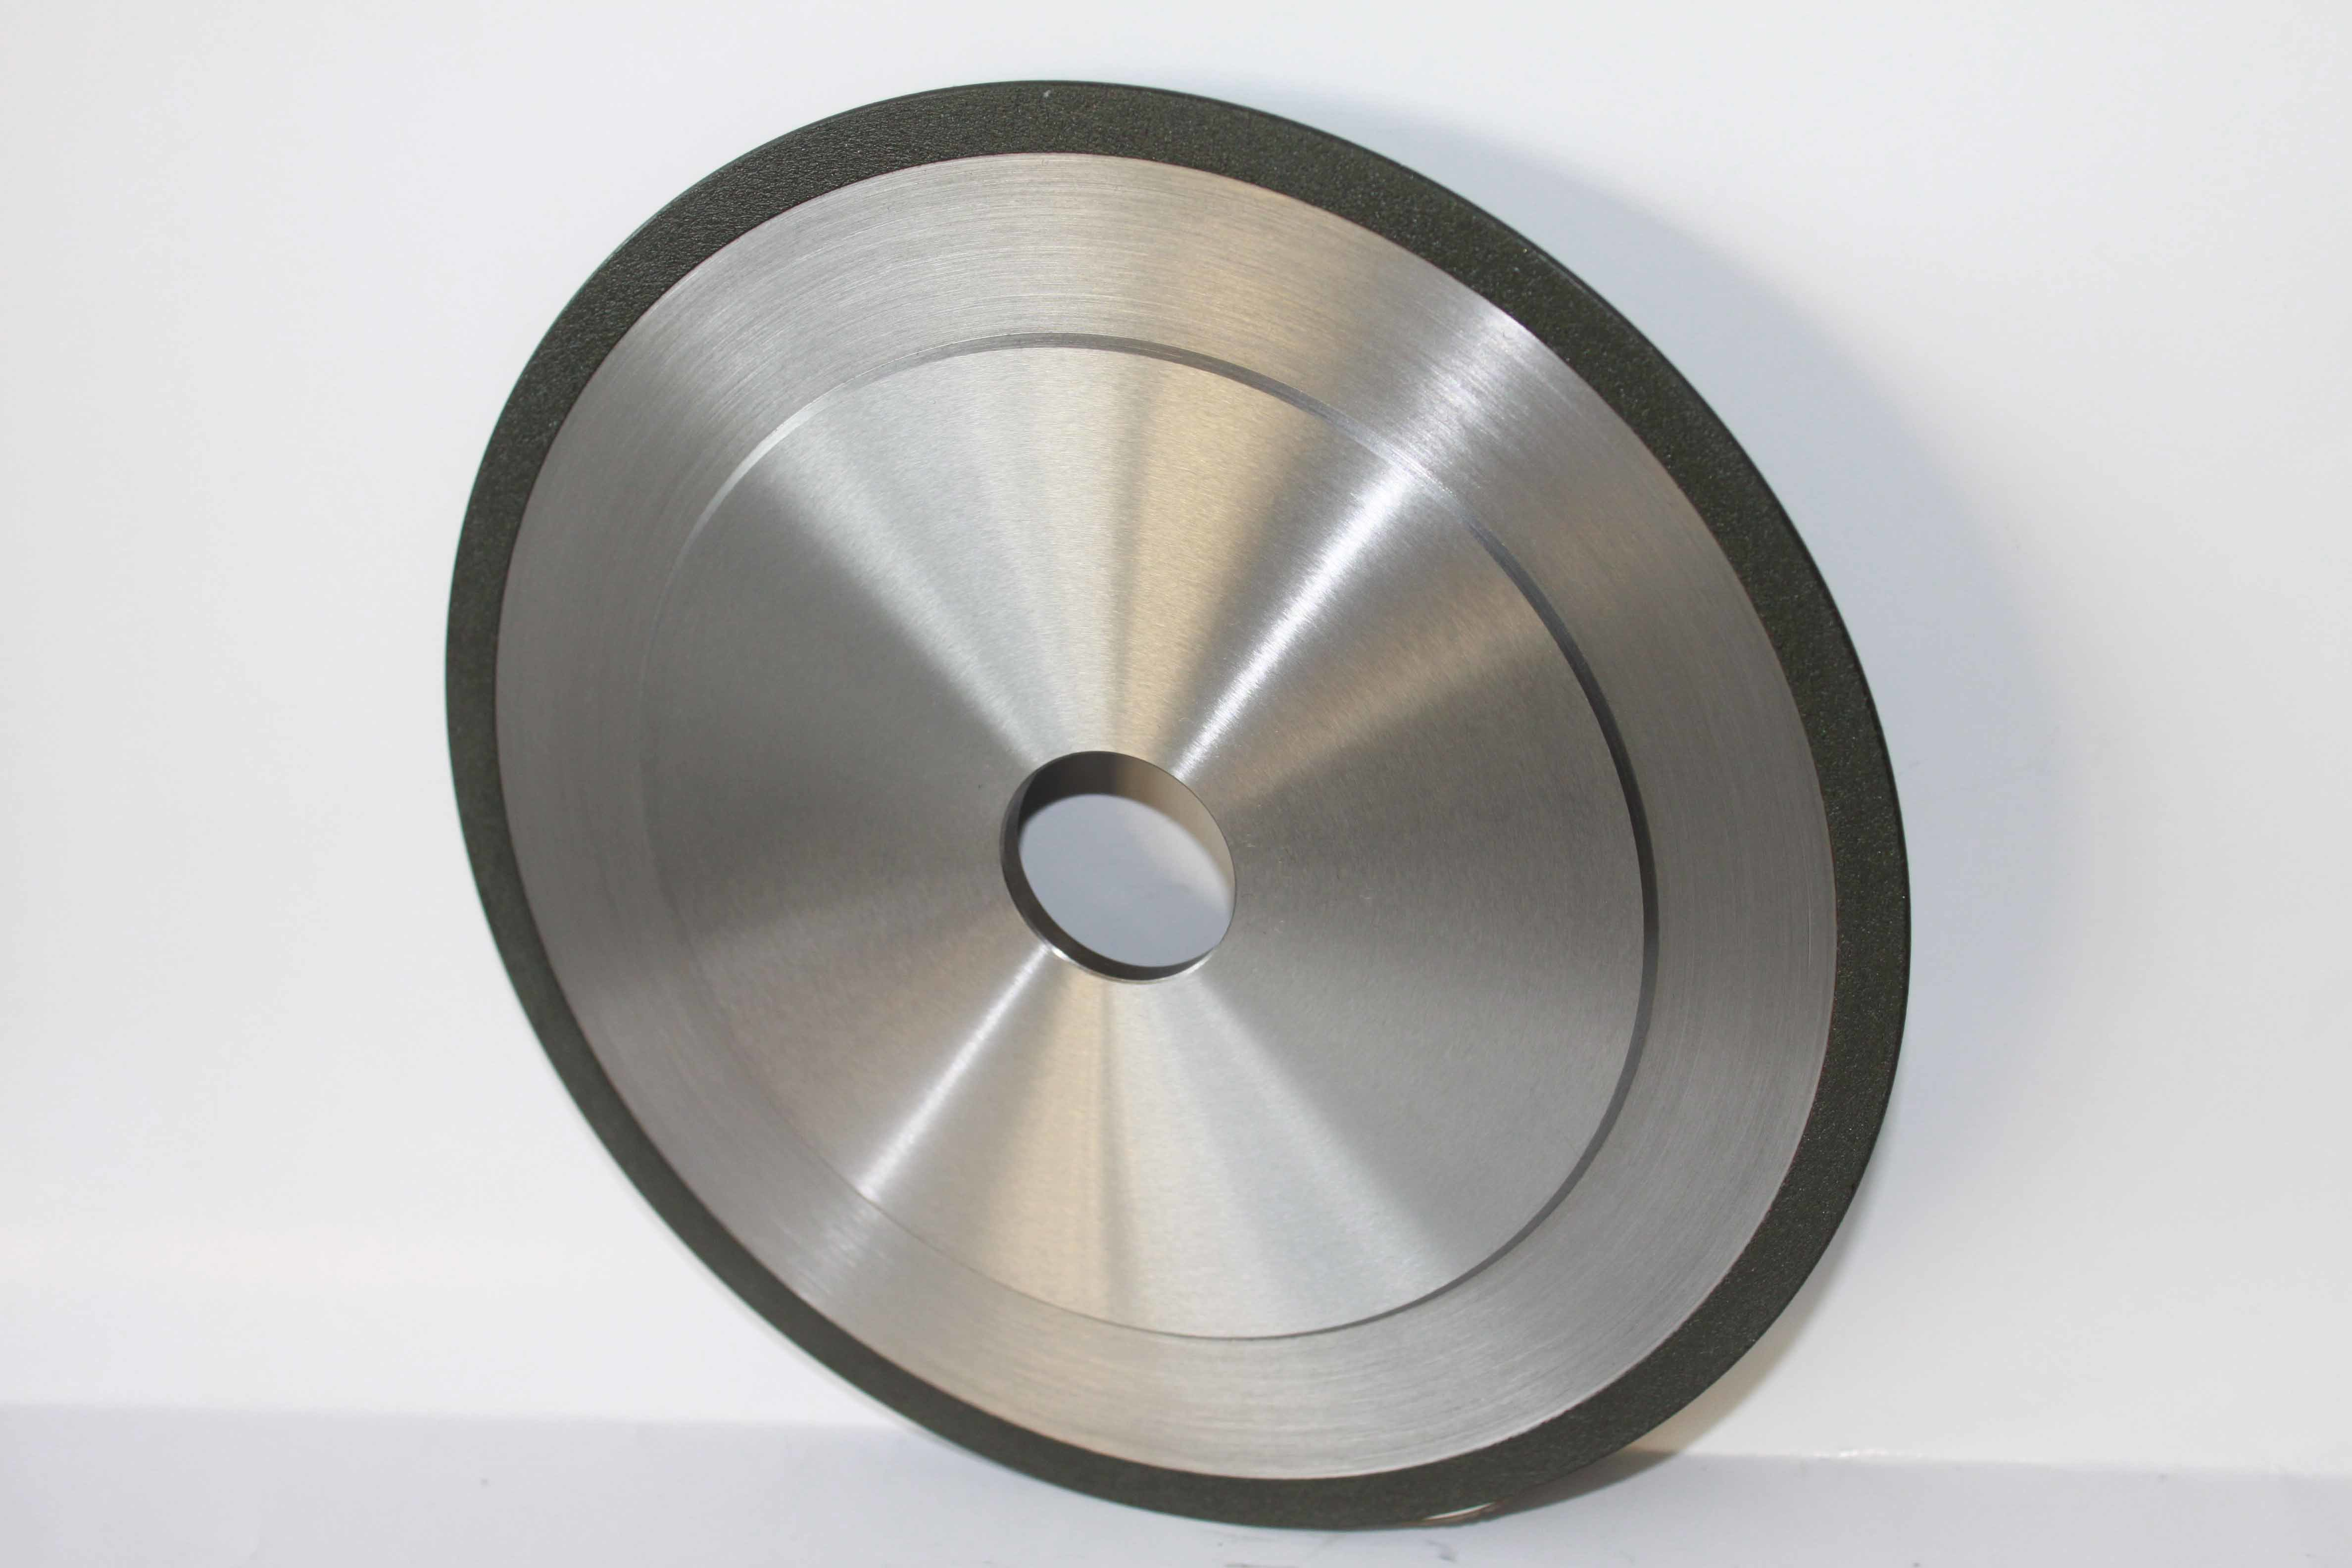 Diamond and CBN Wheels for Woodworking